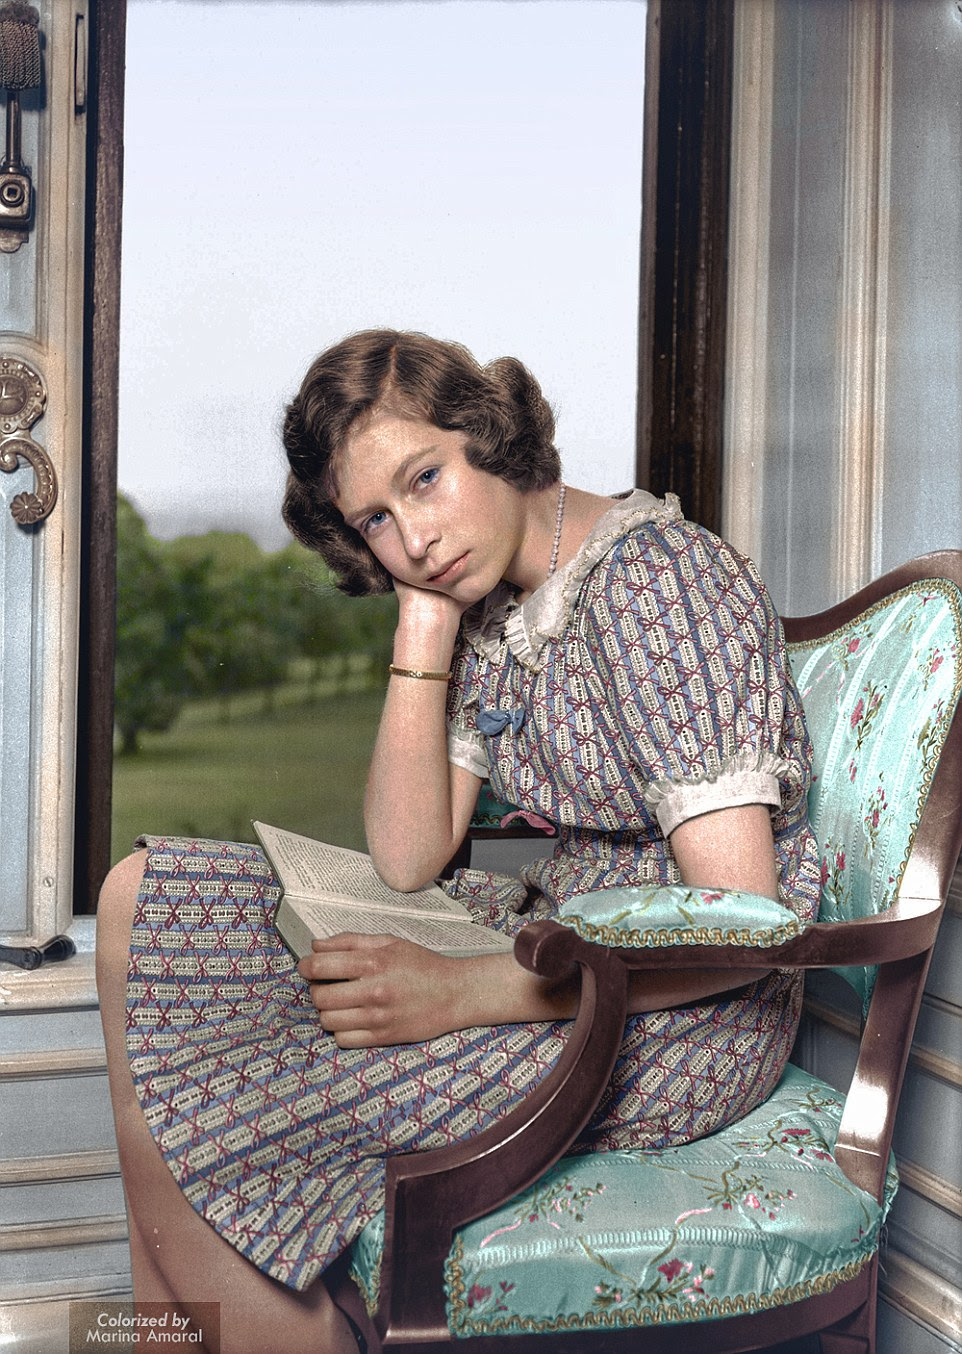 Regal: A fourteen-year-old Queen Elizabeth II, when she was a mere princess, is pictured here sat by the window with her nose in a book